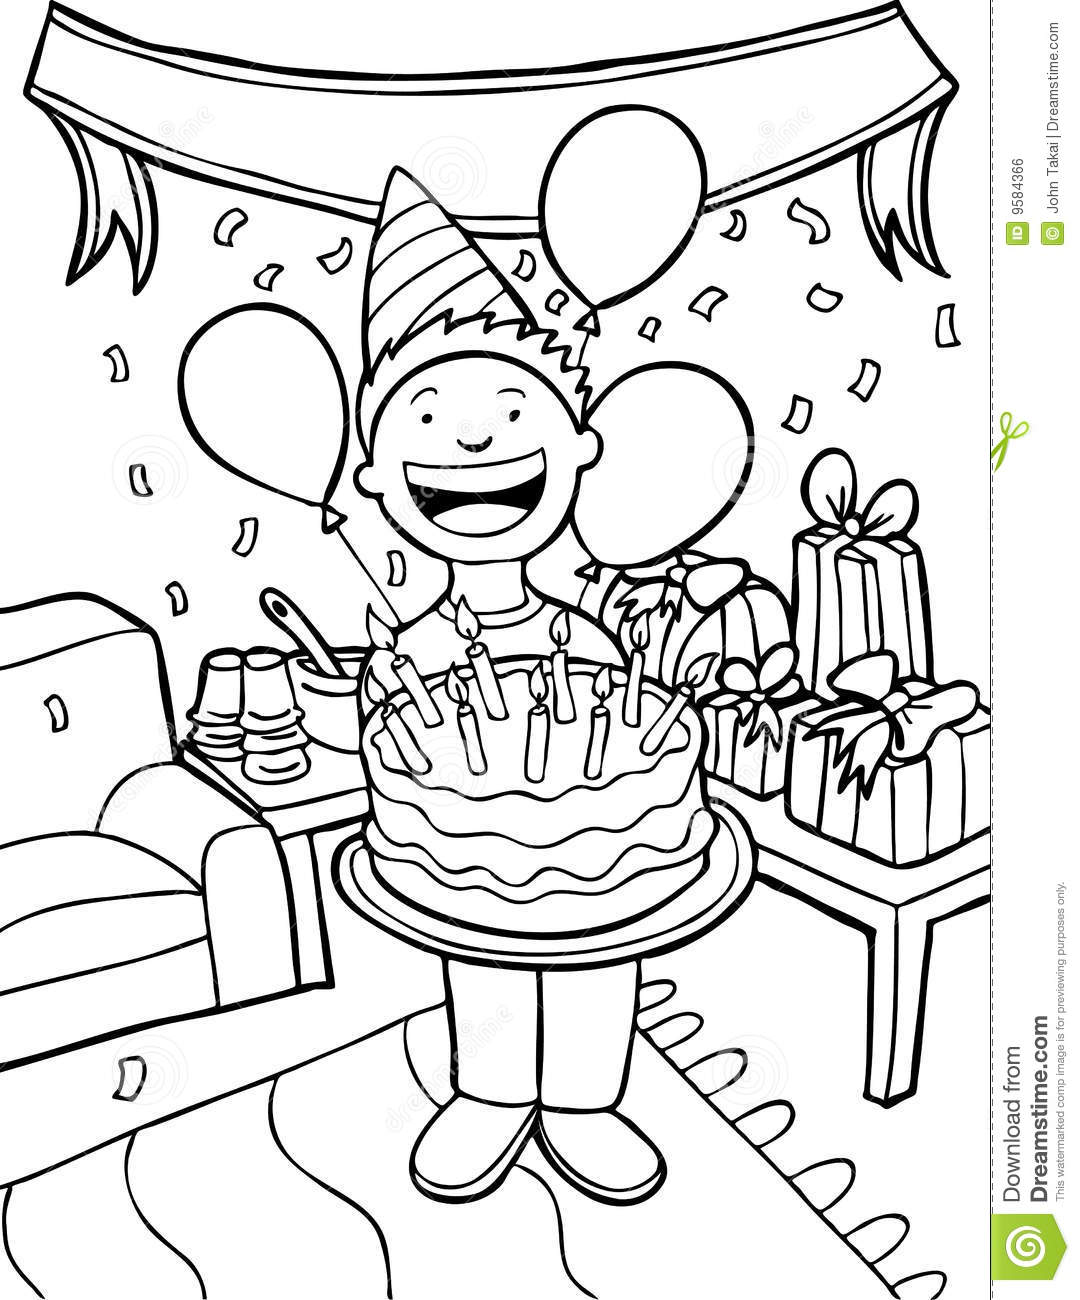 Free Party Clipart Black And White, Download Free Clip Art.